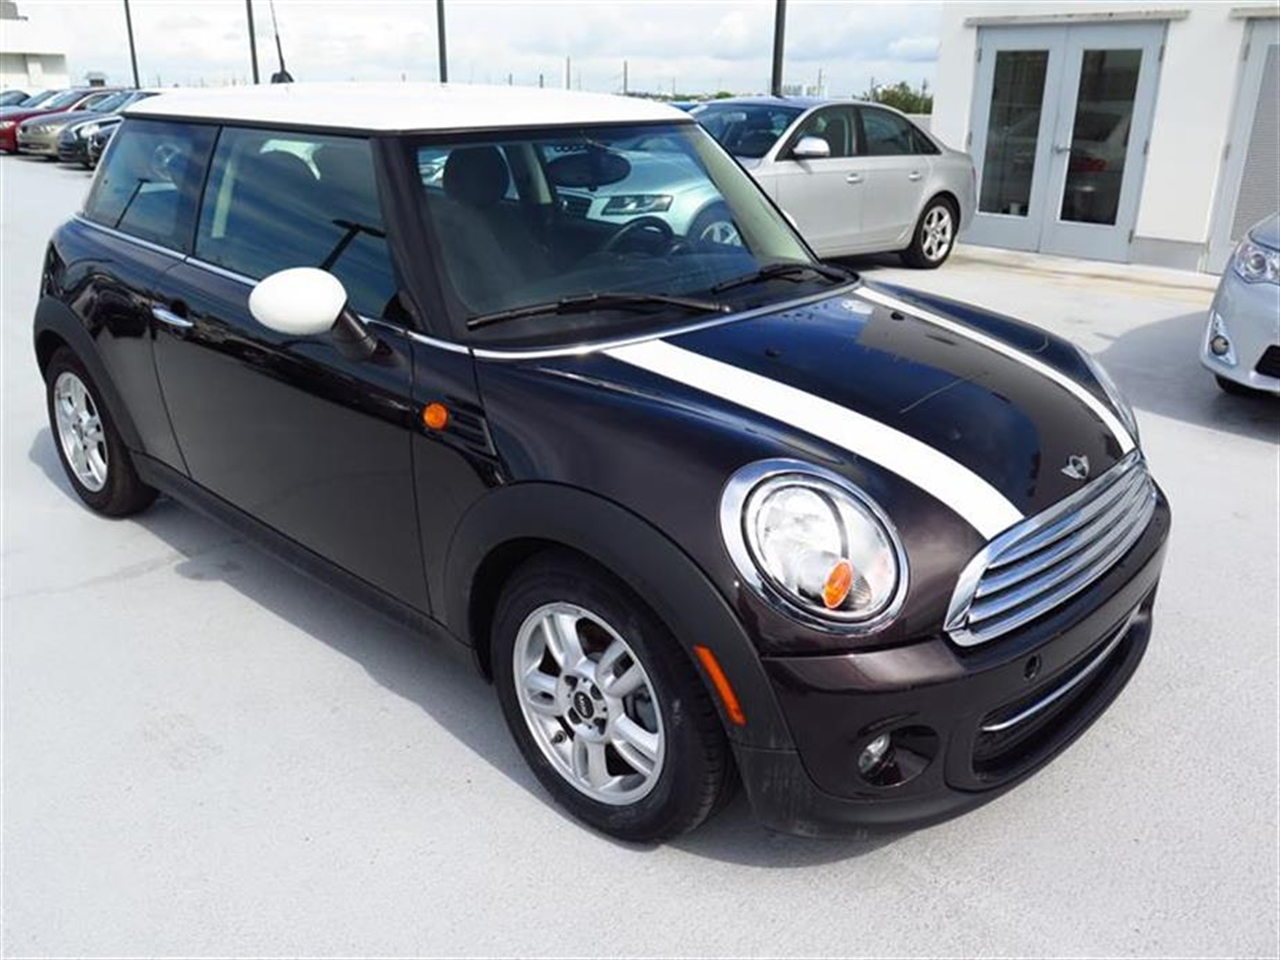 2013 MINI COOPER 2dr Cpe 13836 miles 1 rear cup holder 12V auxiliary pwr outlet in cockpit  lu